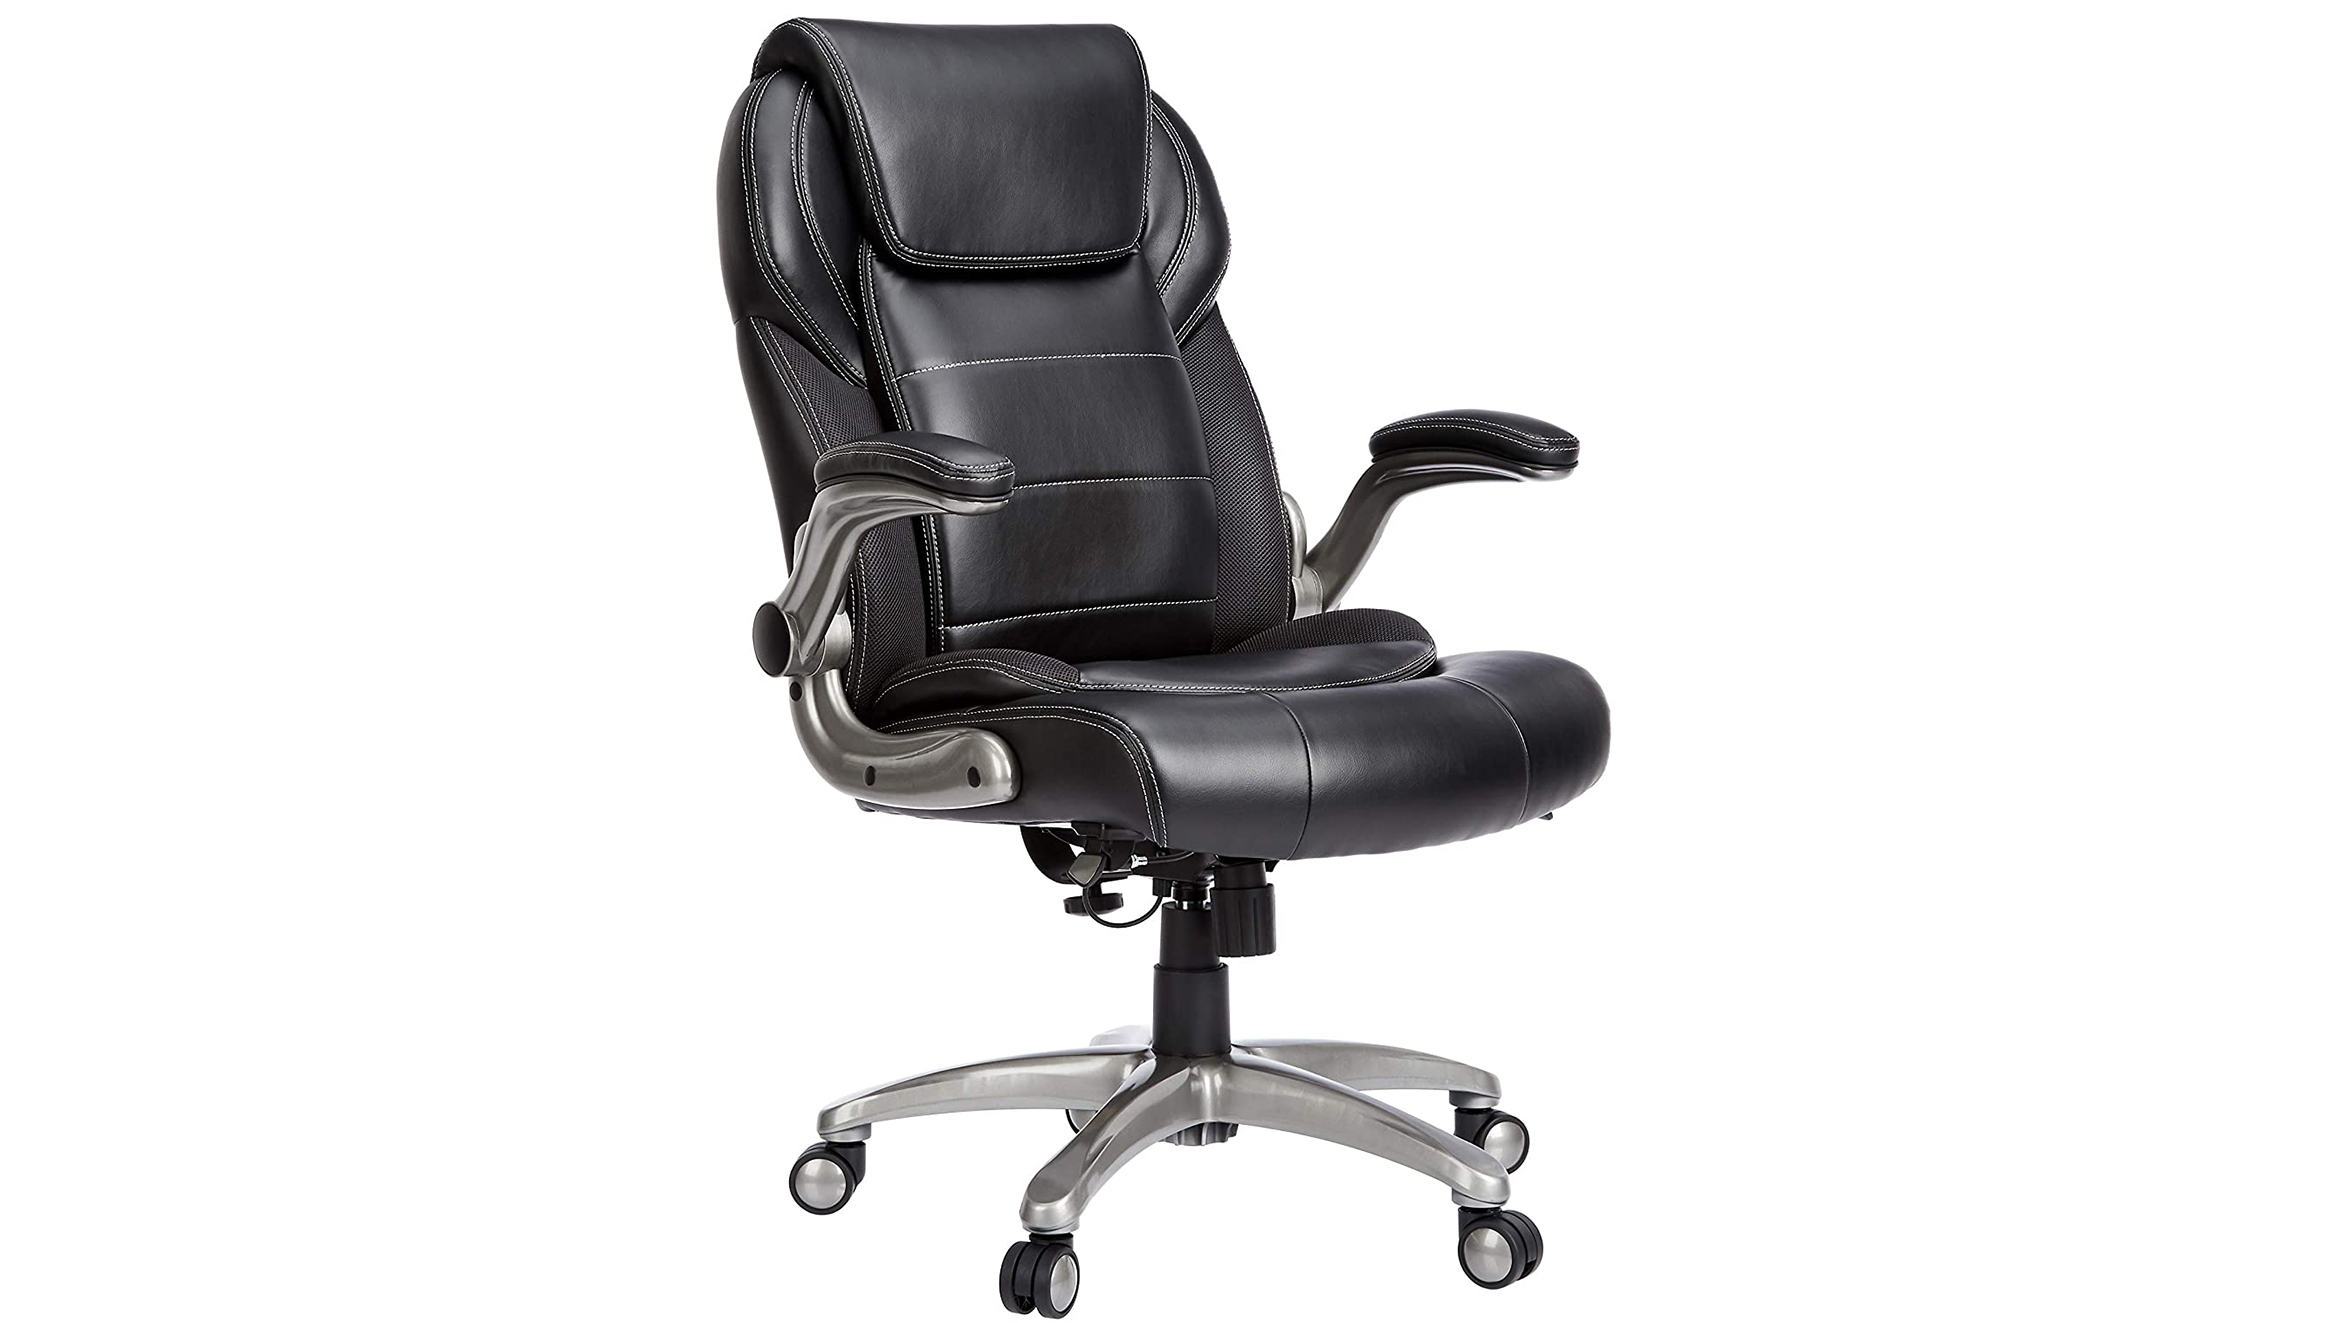 AmazonCommercial high back executive chair